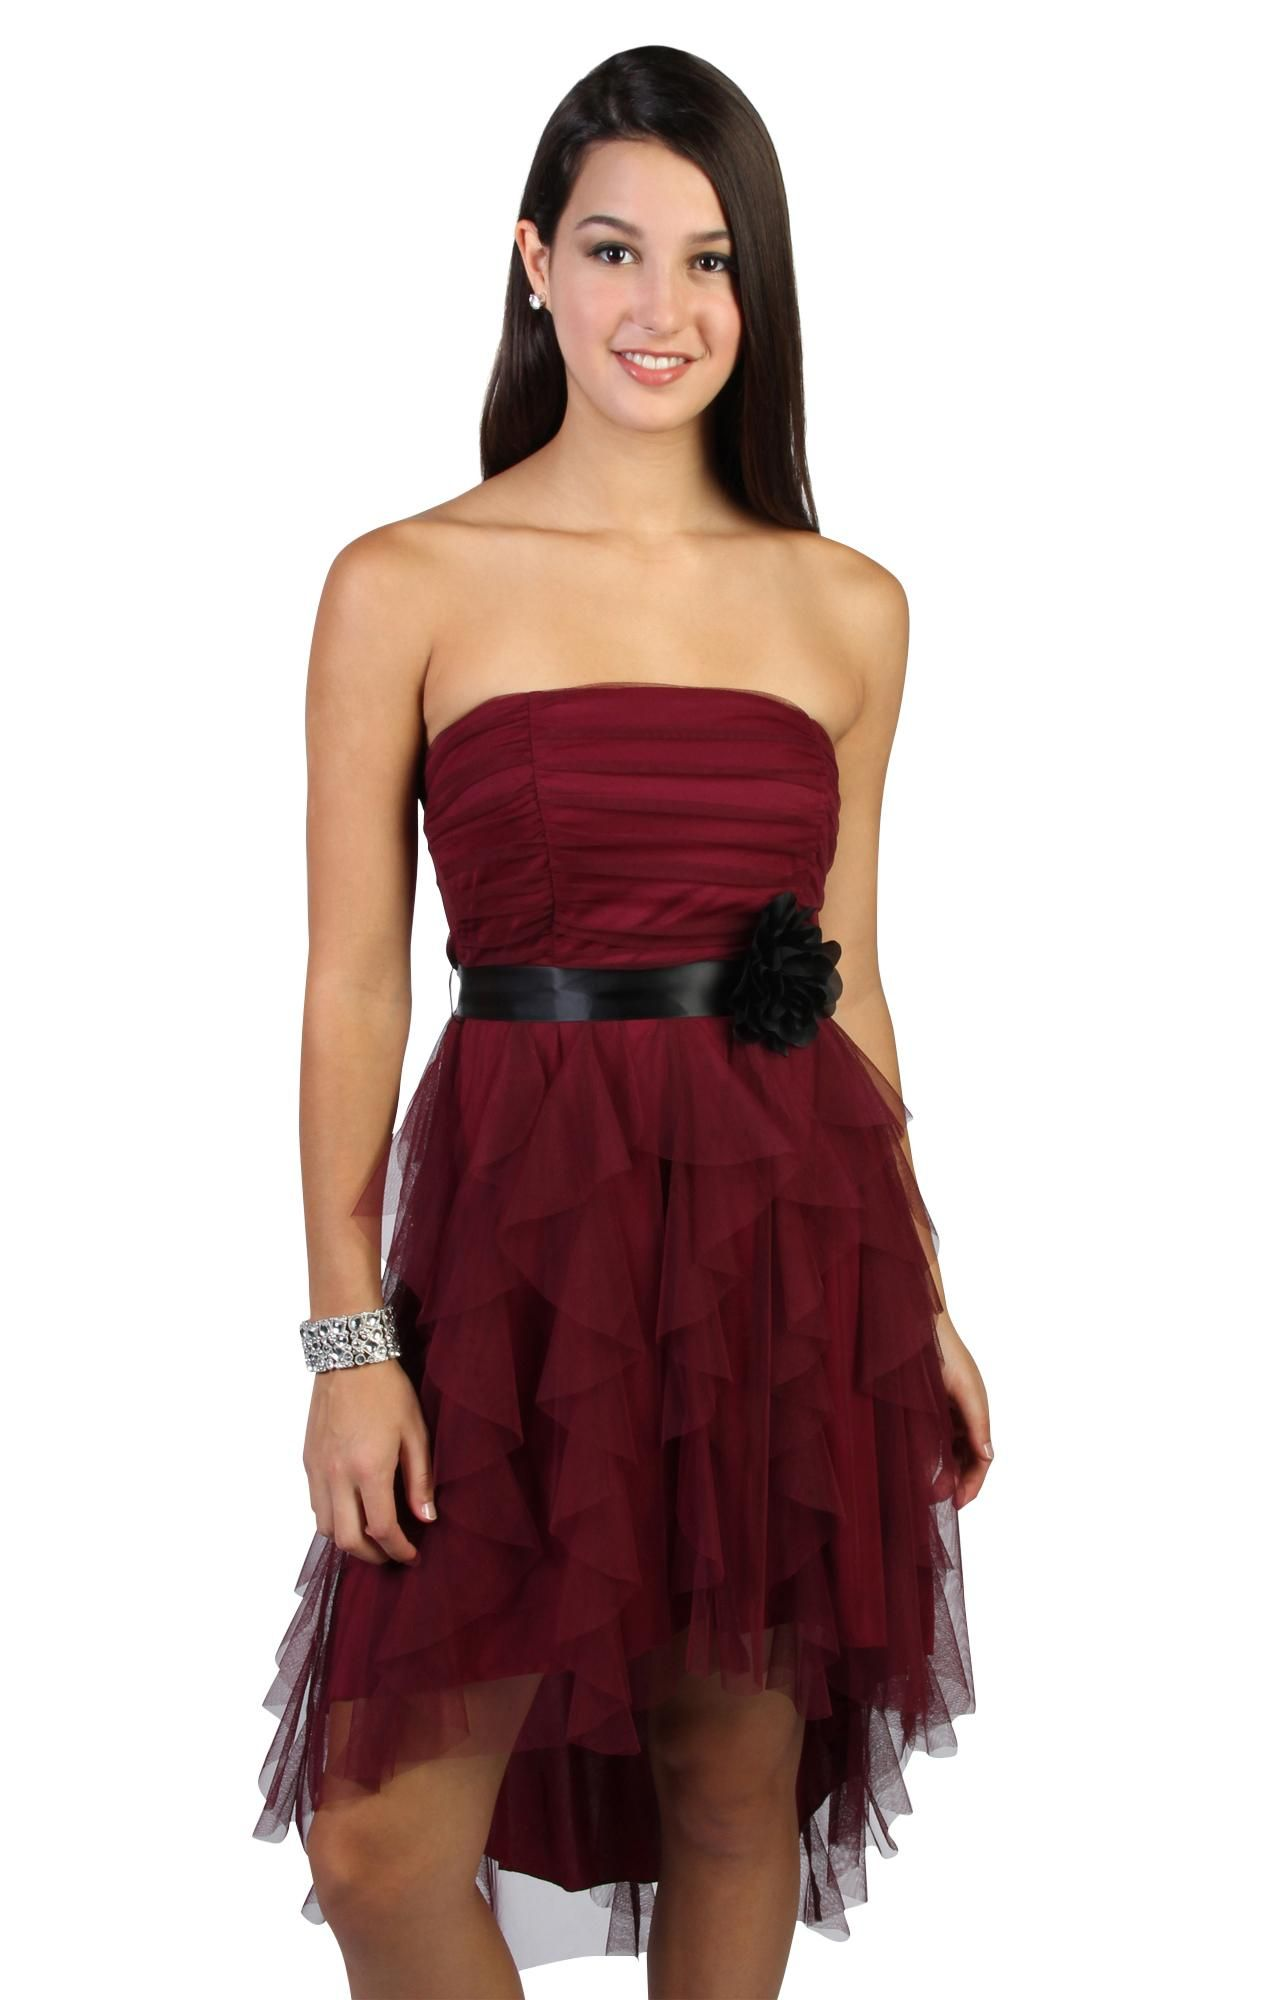 Pin by angie on dressup pinterest wine bridesmaid dresses high